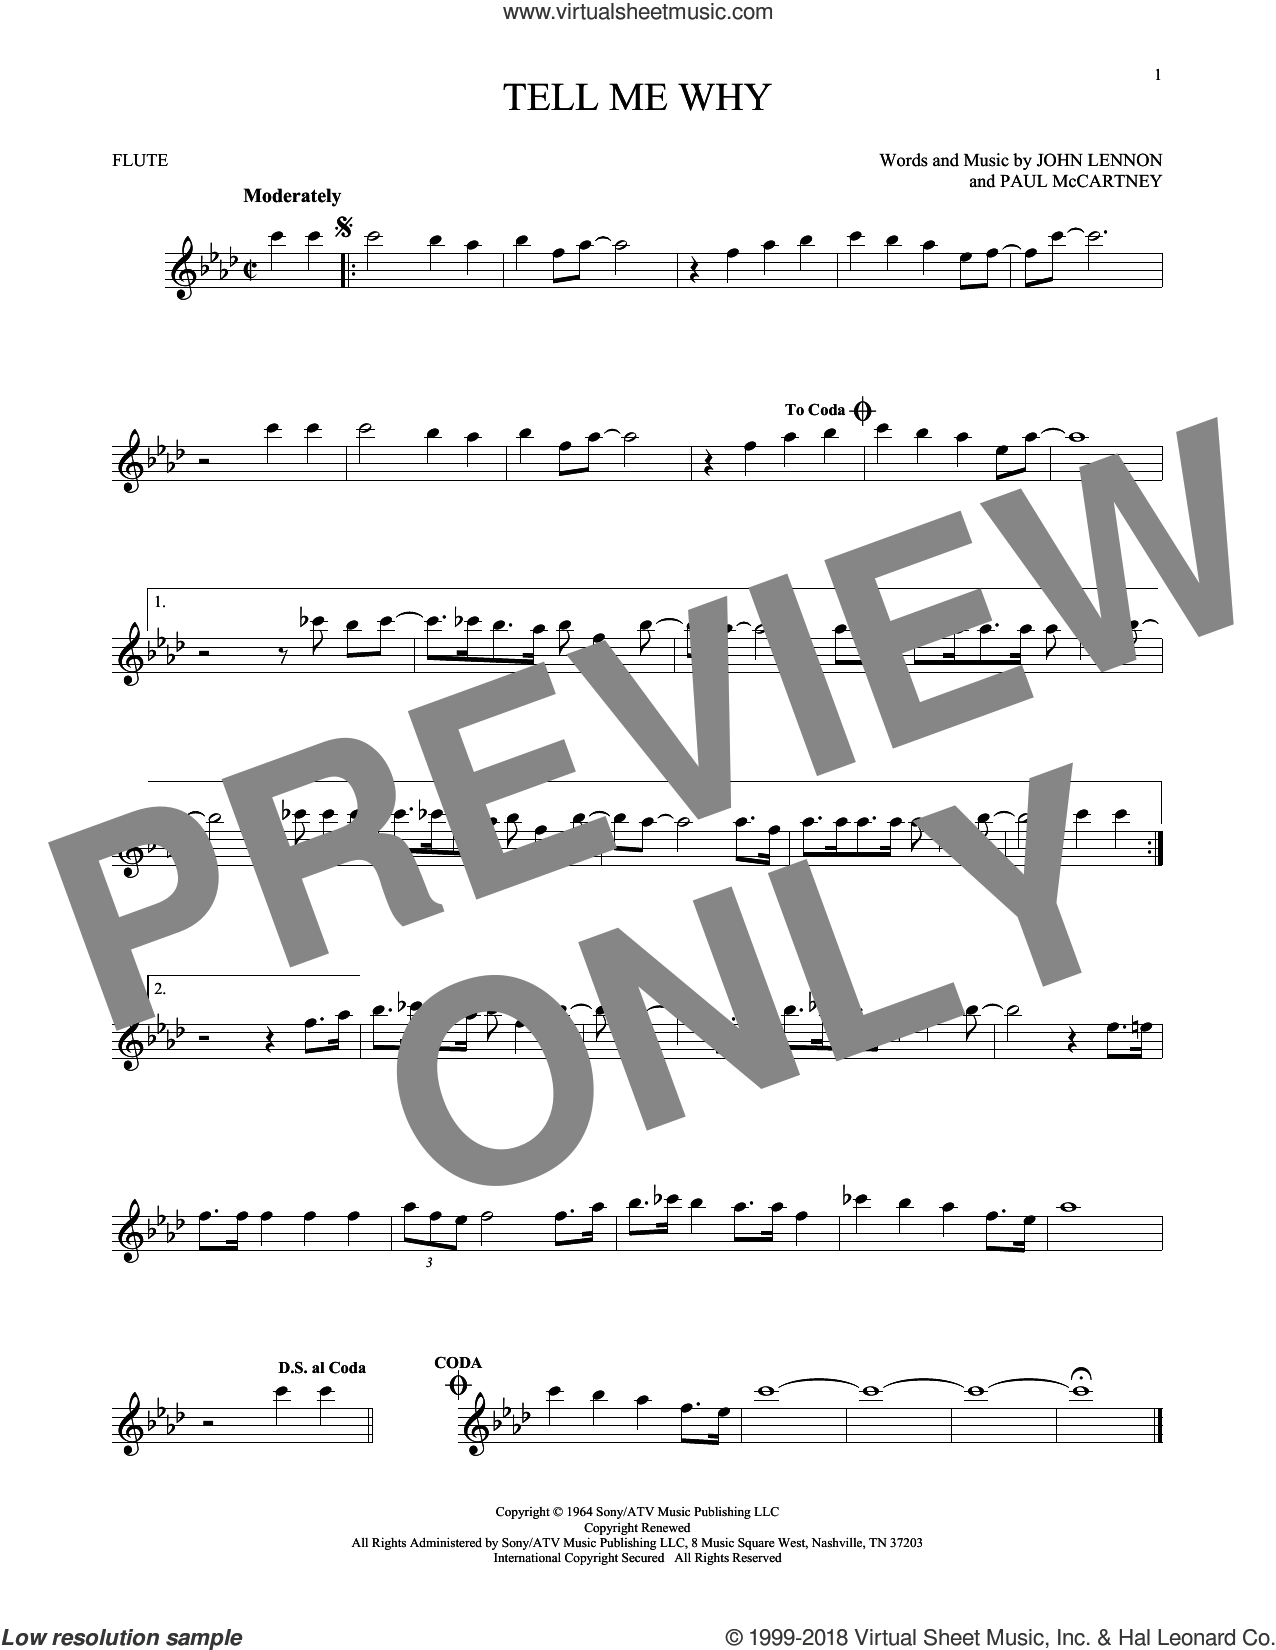 Tell Me Why sheet music for flute solo by The Beatles, John Lennon and Paul McCartney. Score Image Preview.